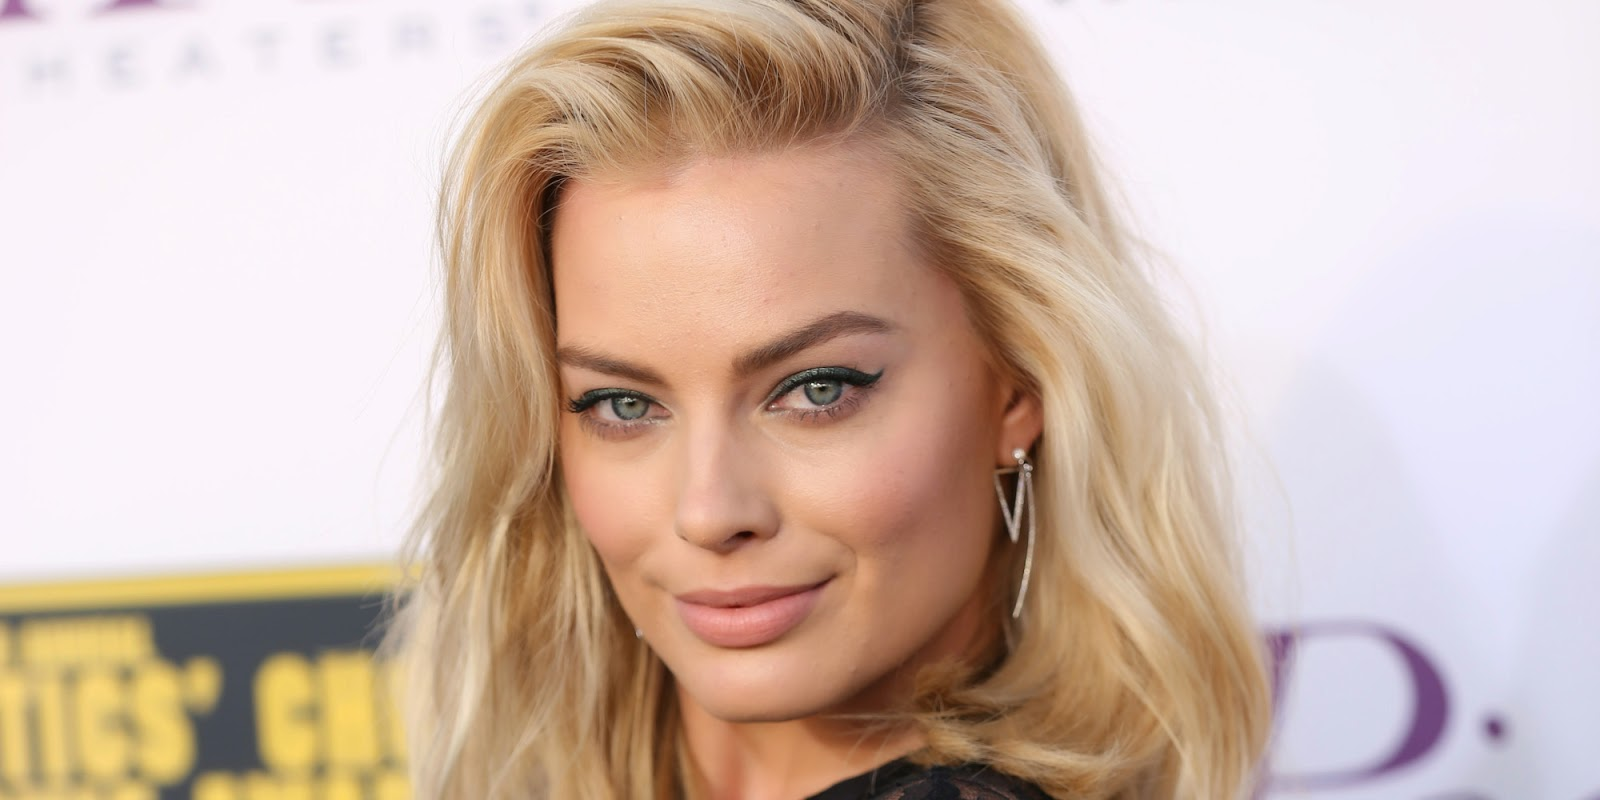 Cool Music Hot Girls Margot Robbie Aussie Movie Star